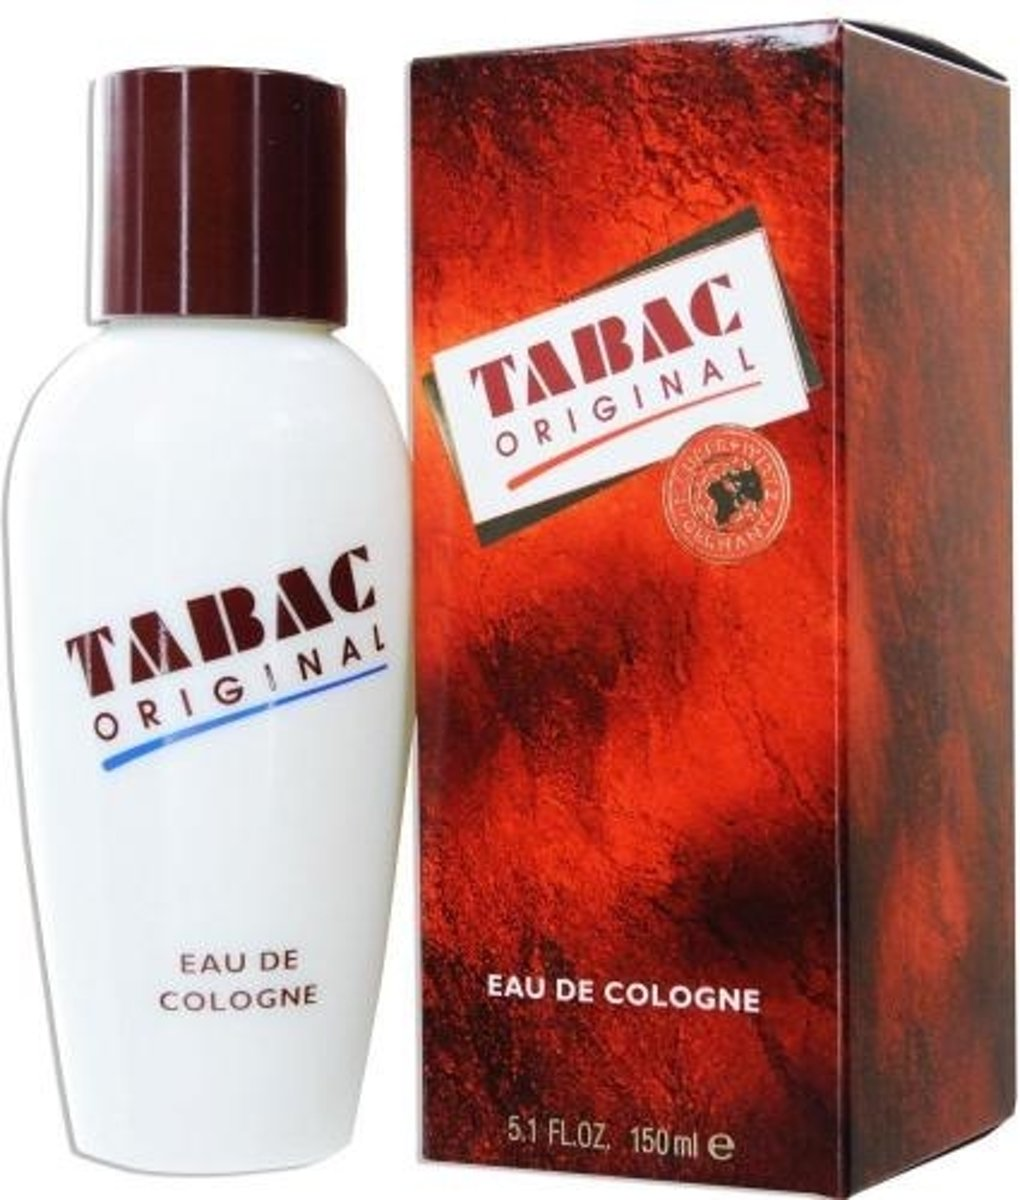 Tabac Original for Men - 150 ml - Eau de cologne